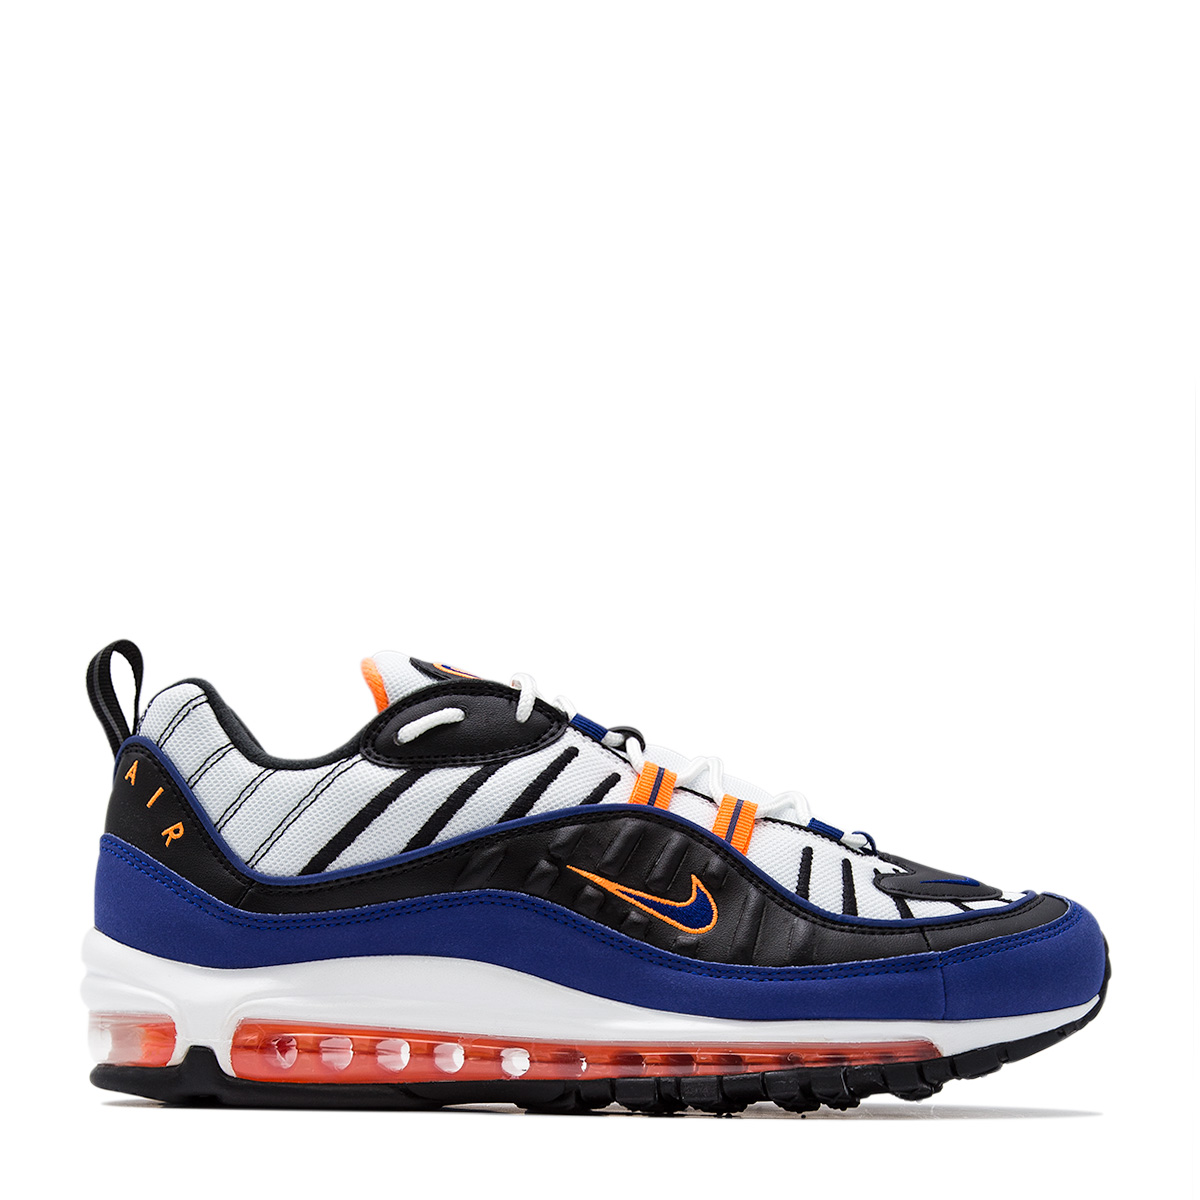 air max uomo in pelle